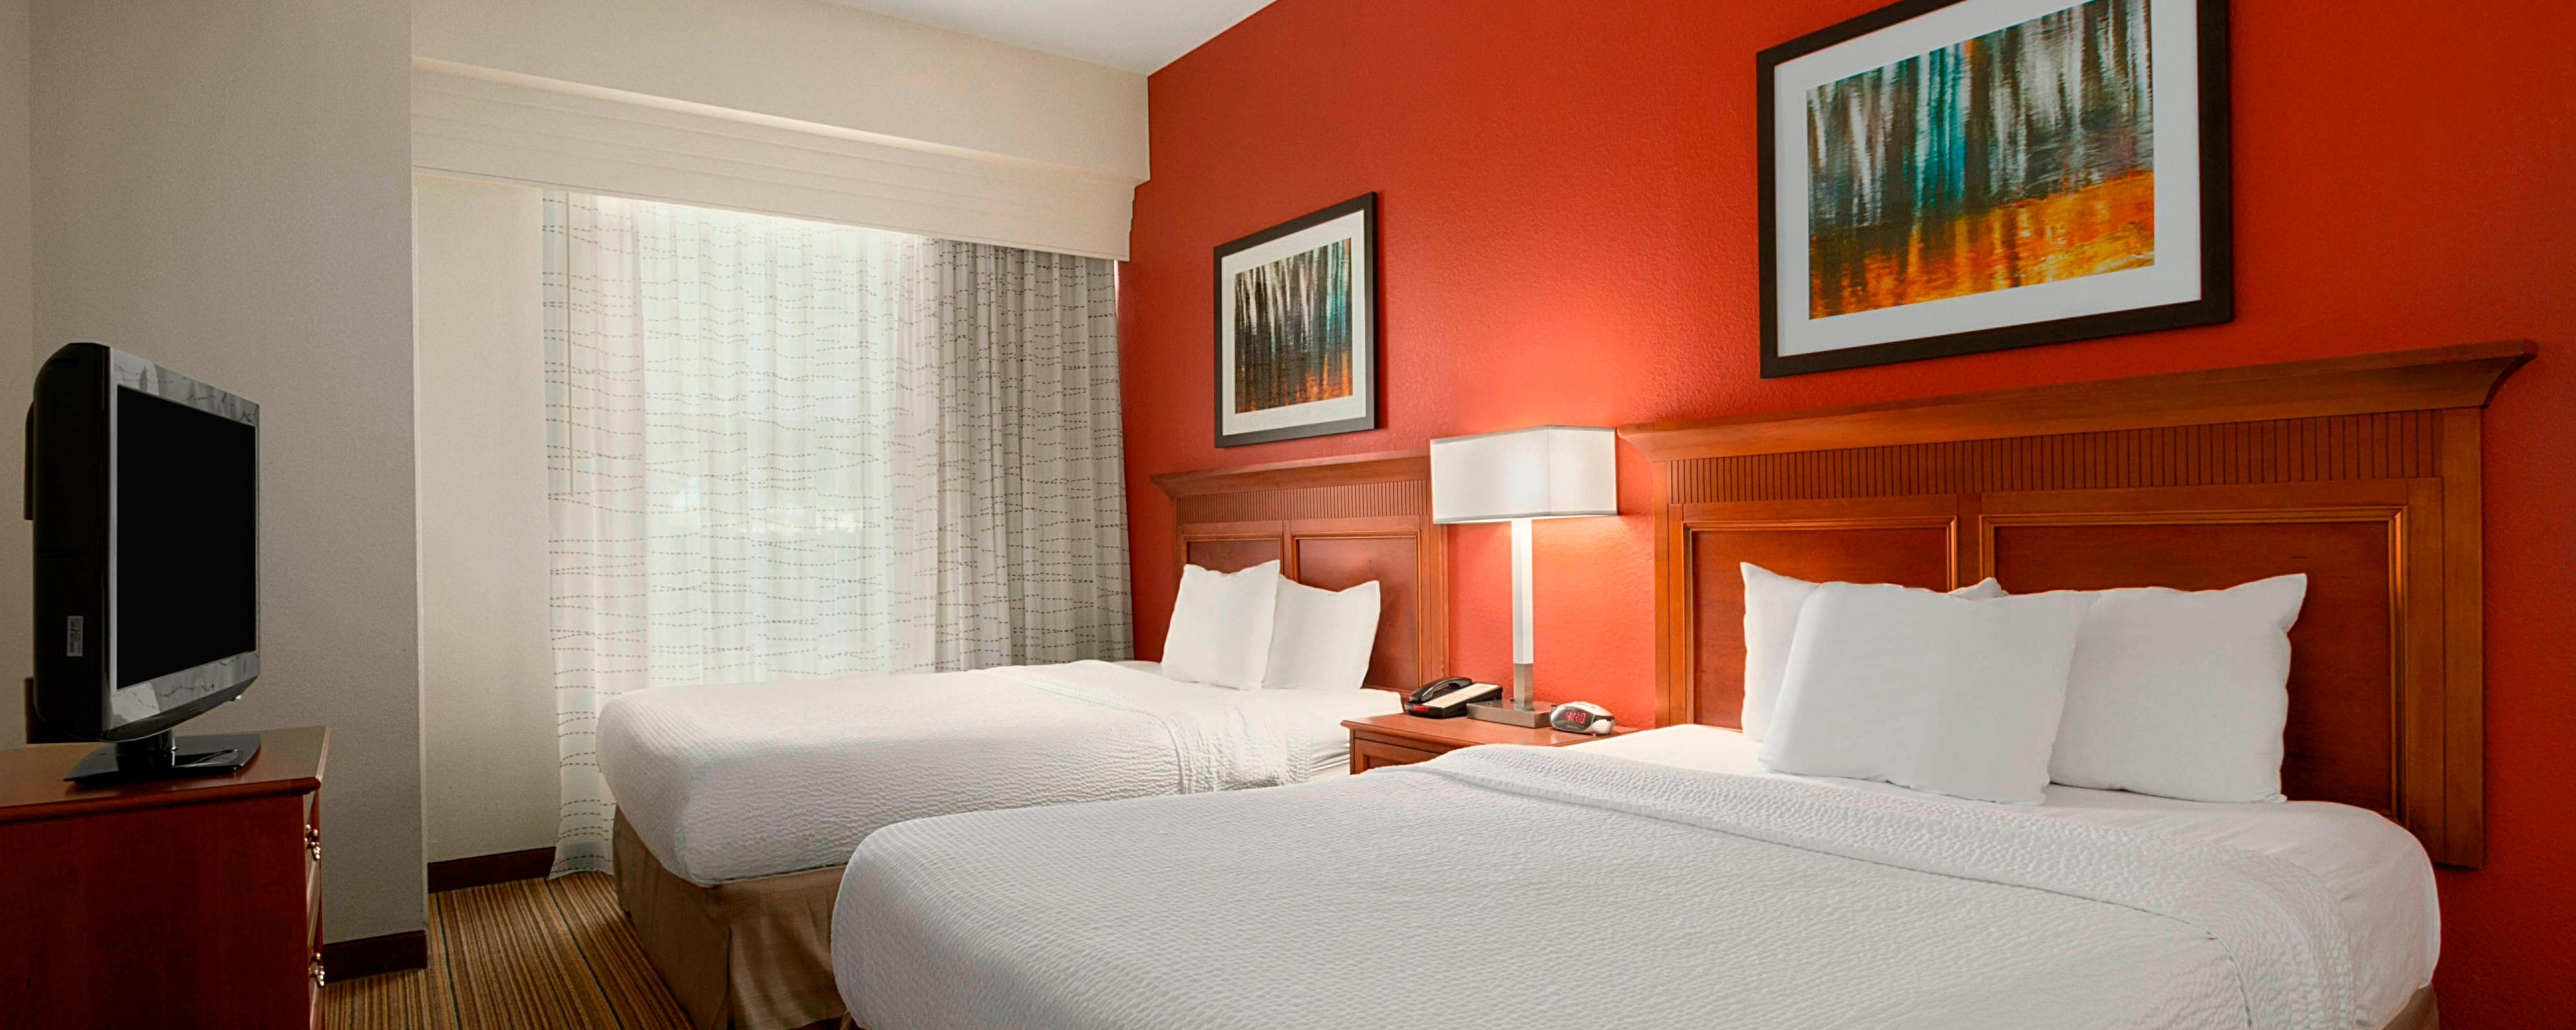 Charleston South Carolina Hotel Rooms